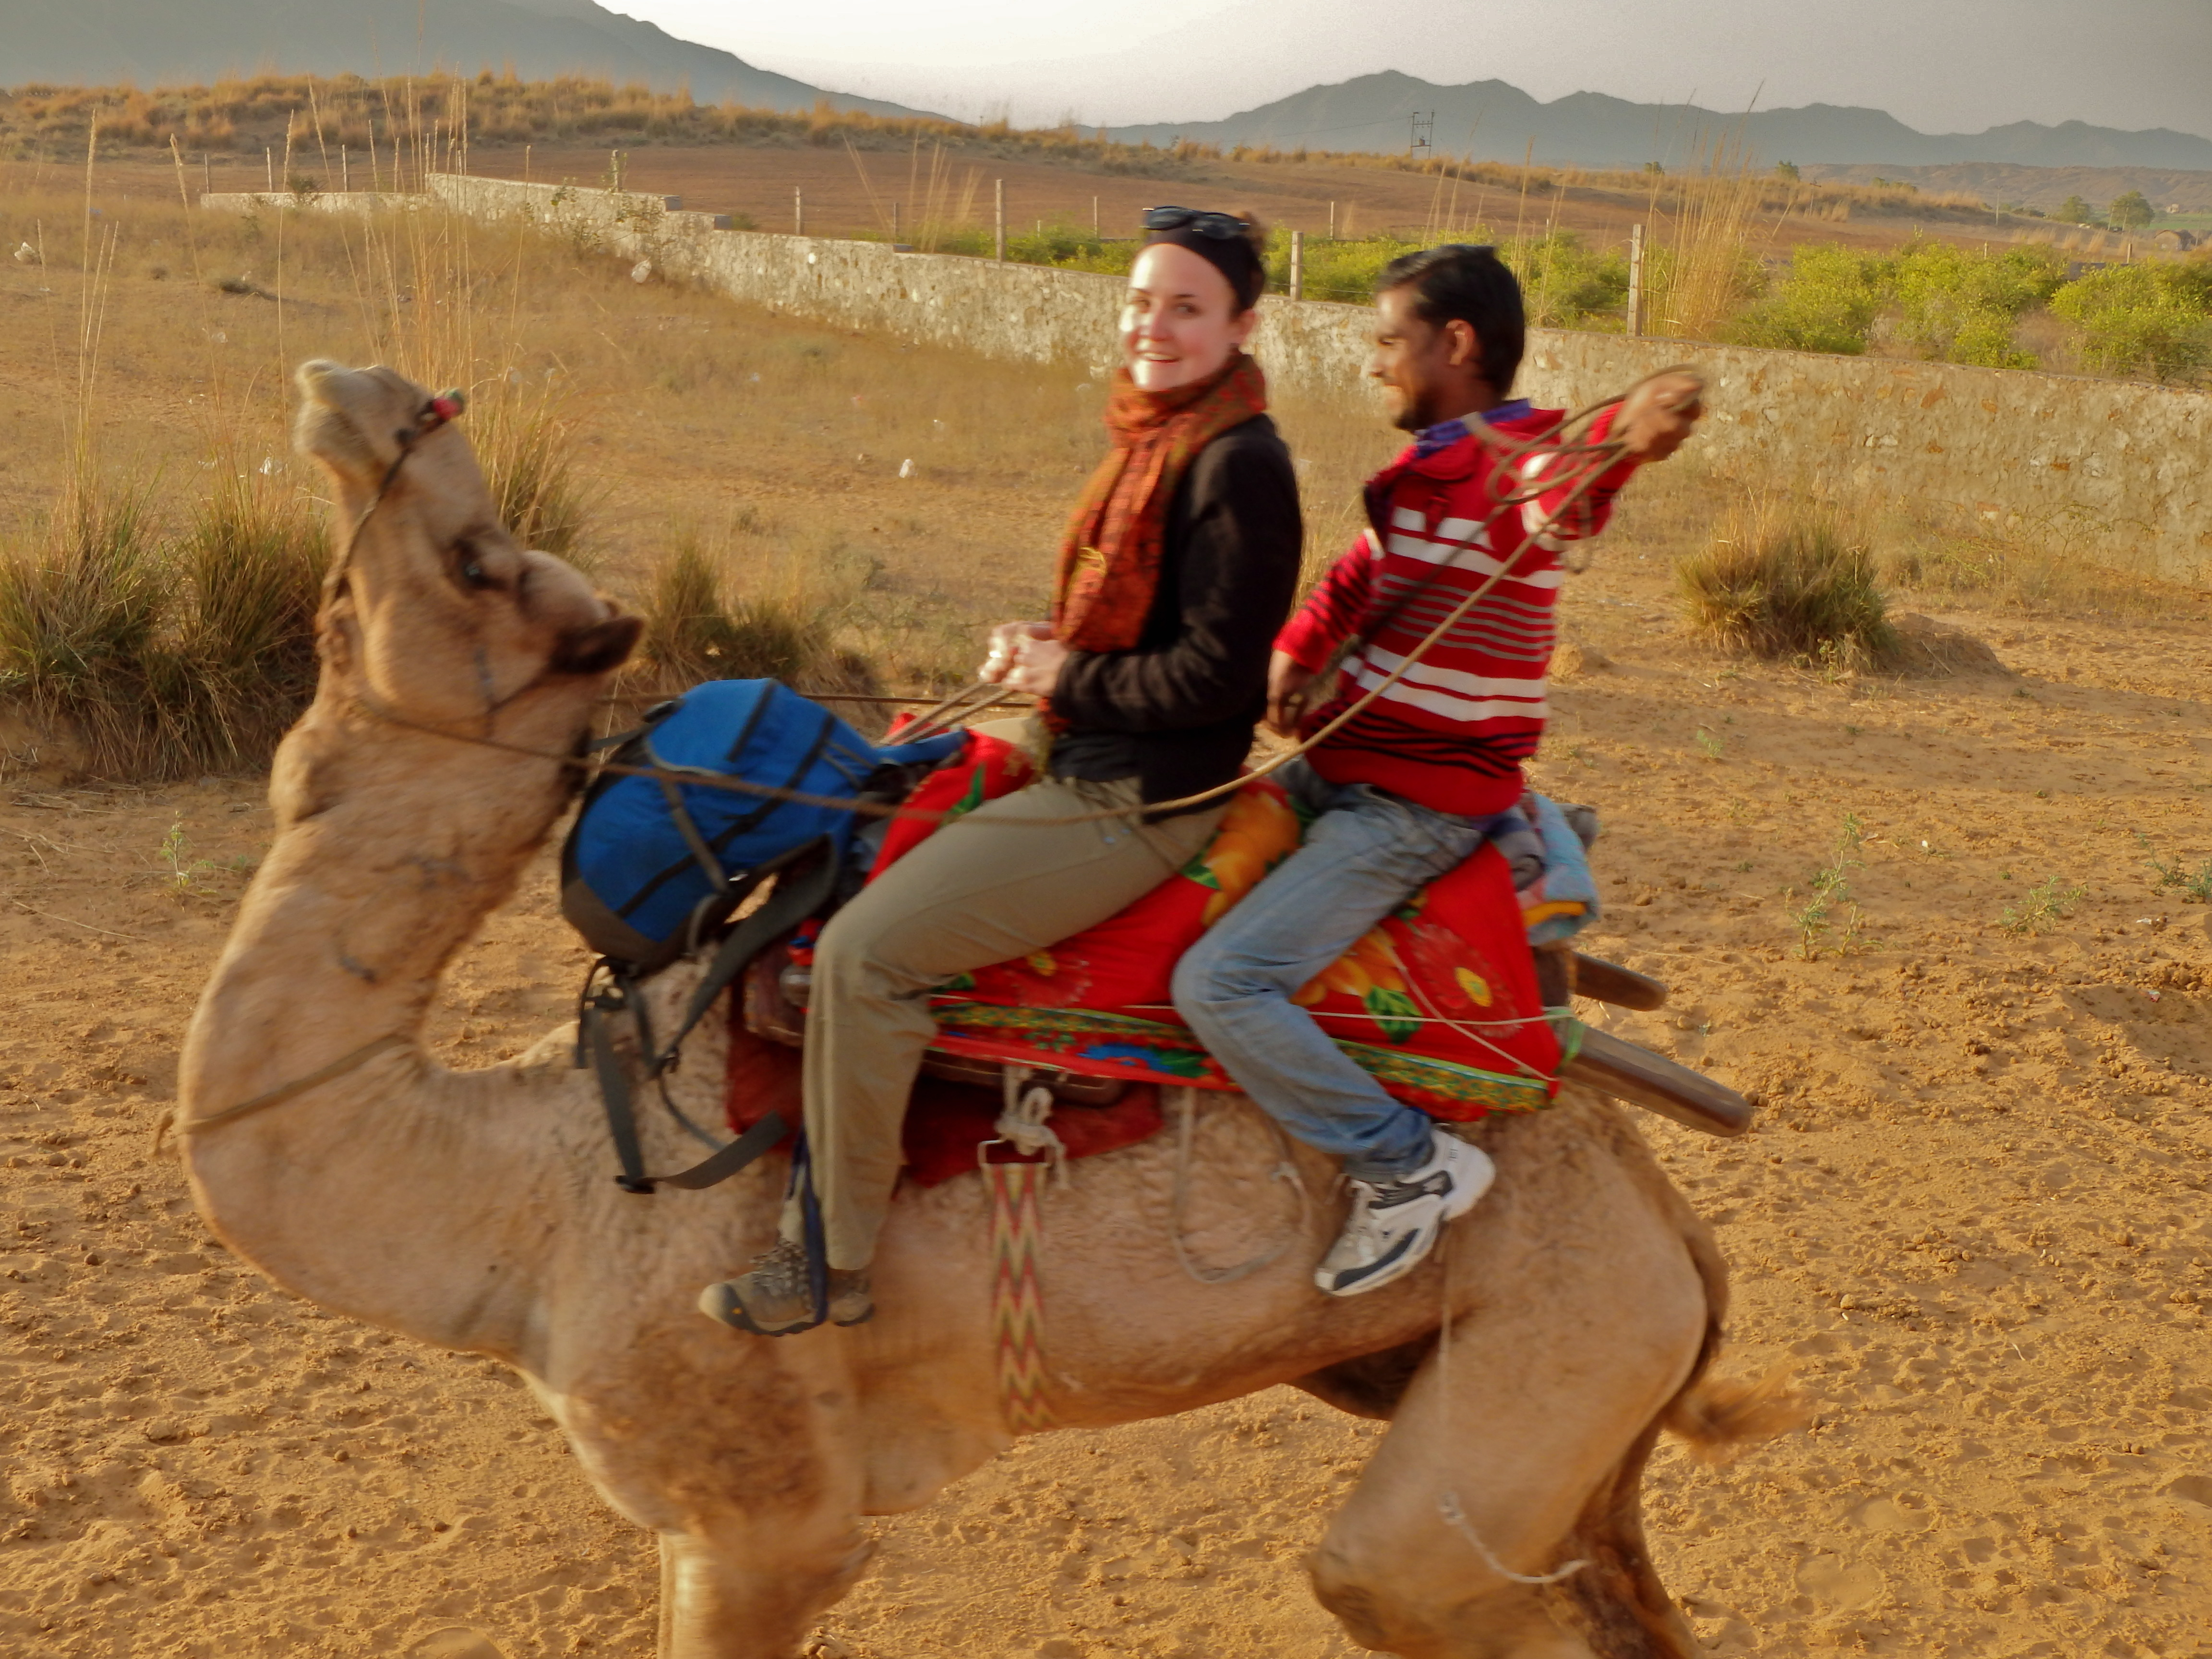 best place to ride a camel in india is india safe for women tourists best tourist activities in india